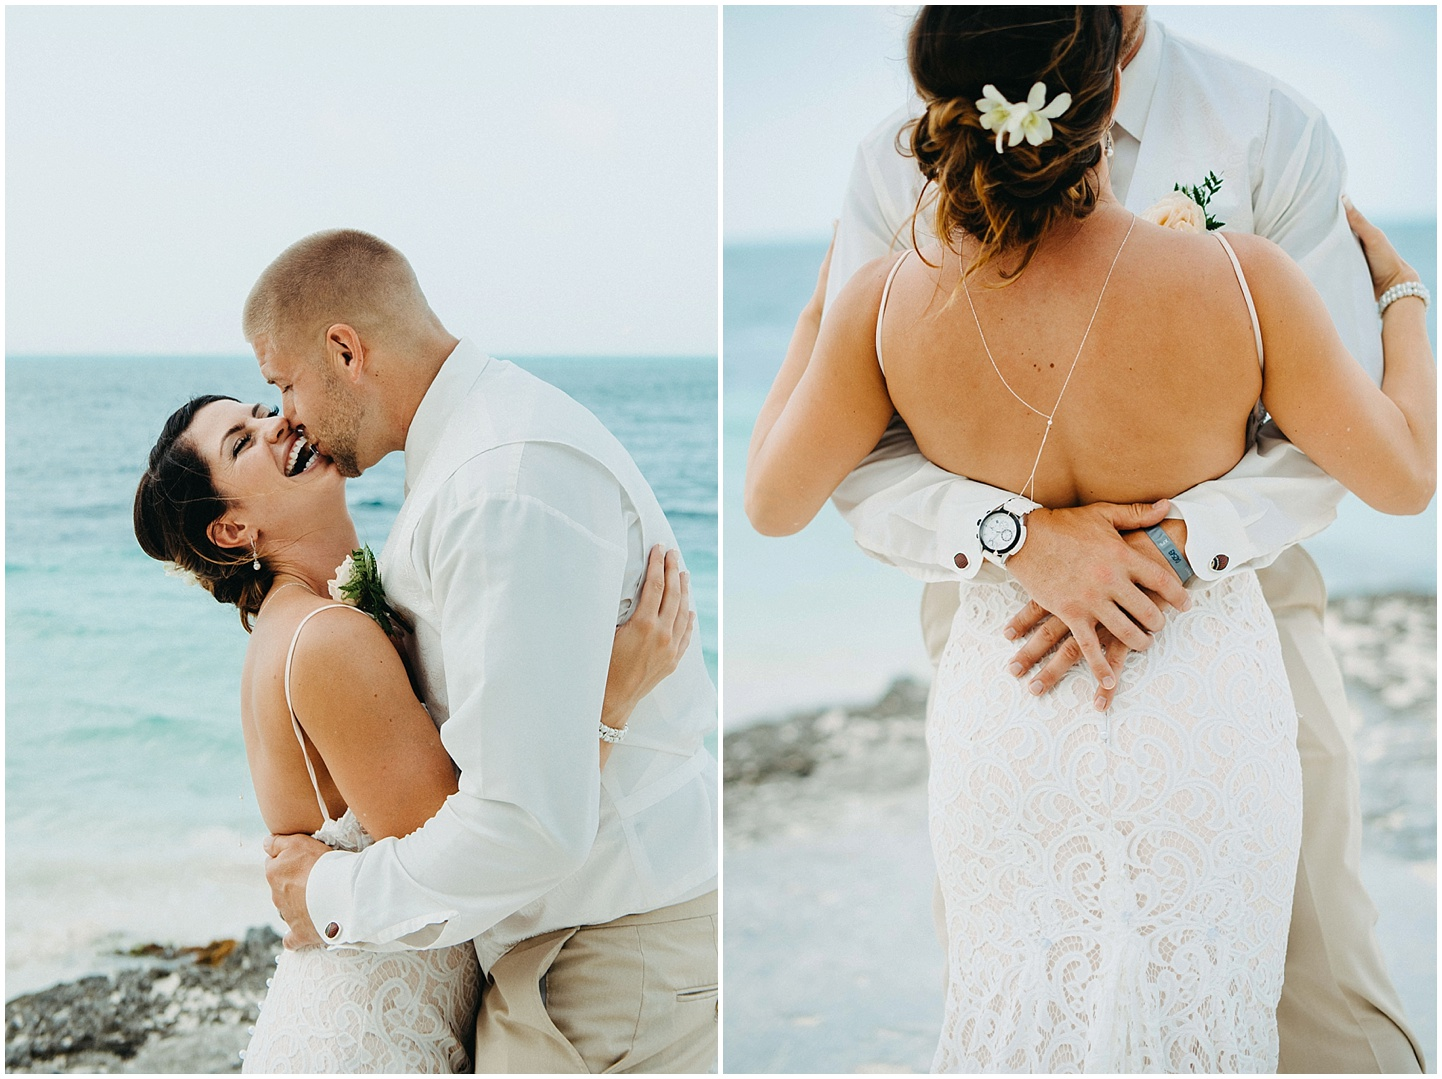 Beach-Wedding-Photography-Cancun-Elopement-Destination-Elopement-Photography-Destination-Beach-Wedding-+Costa-Rica-Wedding-Photography-Beach-Wedding-Photos-teresawoodhull-Cancun-Elopement-Beach-Wedding-+Sunset-Beach-Wedding-Fotografia-de-bodas-Nicoya-Peninsula-Elopement-Photographer-Santa-Teresa-Elopement-Photographer-Adventure-elopement-photographer-Santa-Teresa-Wedding-Photographer-Adventure-Wedding-Boda-playa-santa-teresa-Adventure-Wedding-Photography-Adventure-Wedding-Photographer-Beach-Elopement-Beach-Elopement-Photos-maddie-mae-Beach-Elopement-Photographer-Destination-Elopement-Photographer-Sunset-Beach-Elopement-Mexico-wedding-photographer-cabo-wedding-photographer-mexico-wedding-mexico-destination-wedding-cancun-destination-wedding-cancun-elopement-photographer-playa-del-carmen-wedding-playa-del-carmen-destination-wedding-photographer-playa-del-carmen-wedding-photography-Nicoya-Peninsula-Wedding-Photography-Nicoya-Peninsula-Wedding-Photographer-Nicoya-Peninsula-Elopement-Photography-julia-tony-011